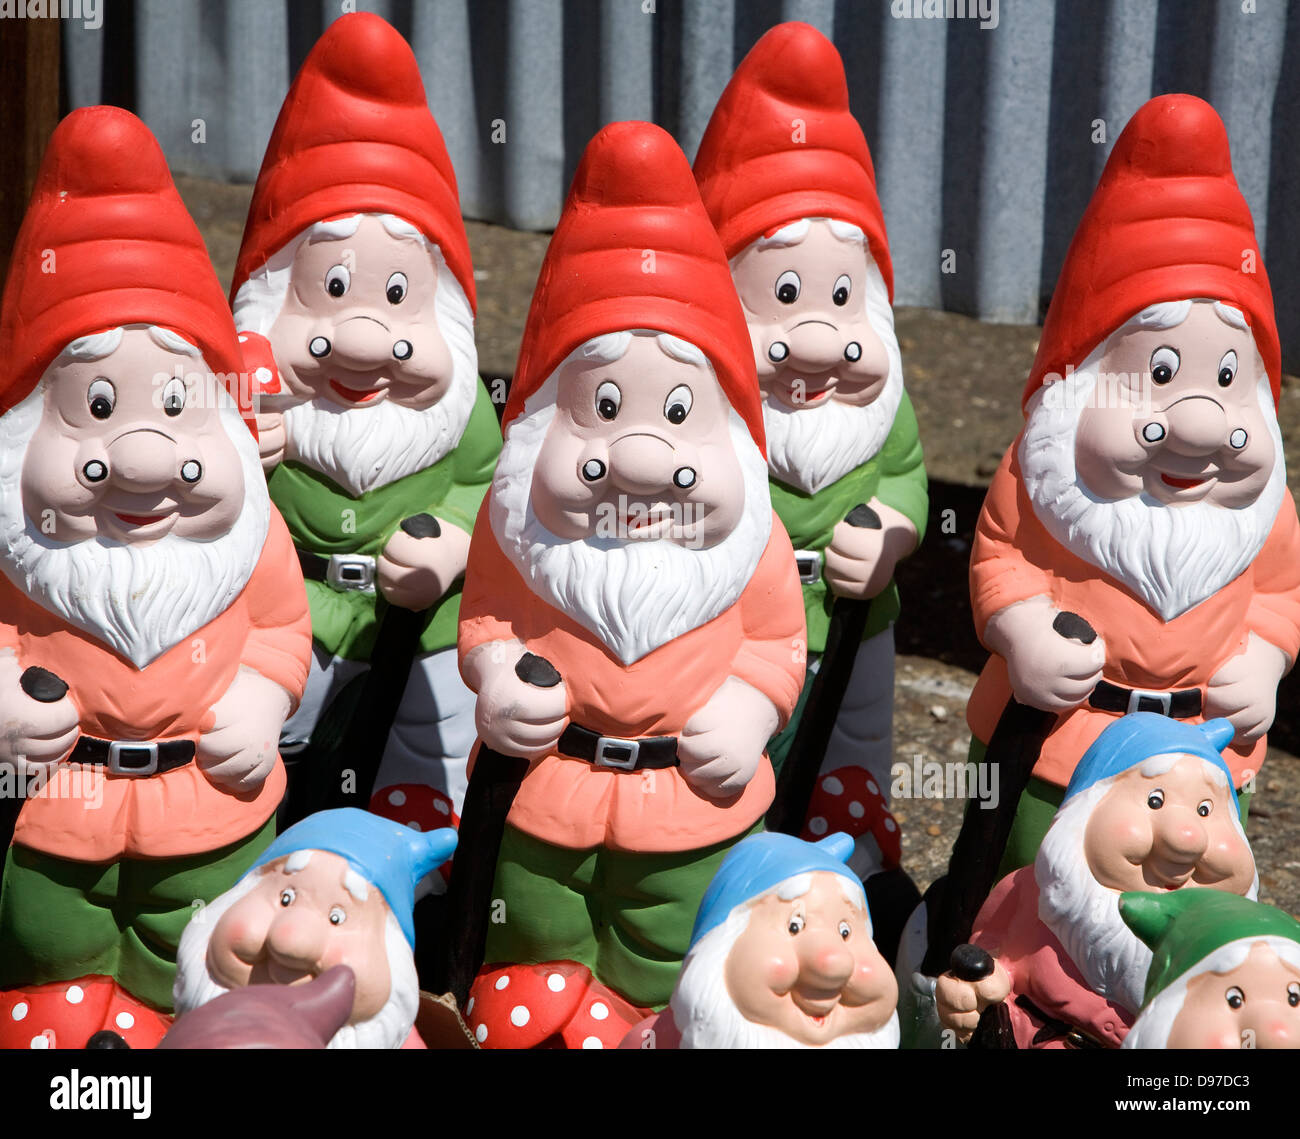 Colourful garden gnomes lined up for sale, UK - Stock Image